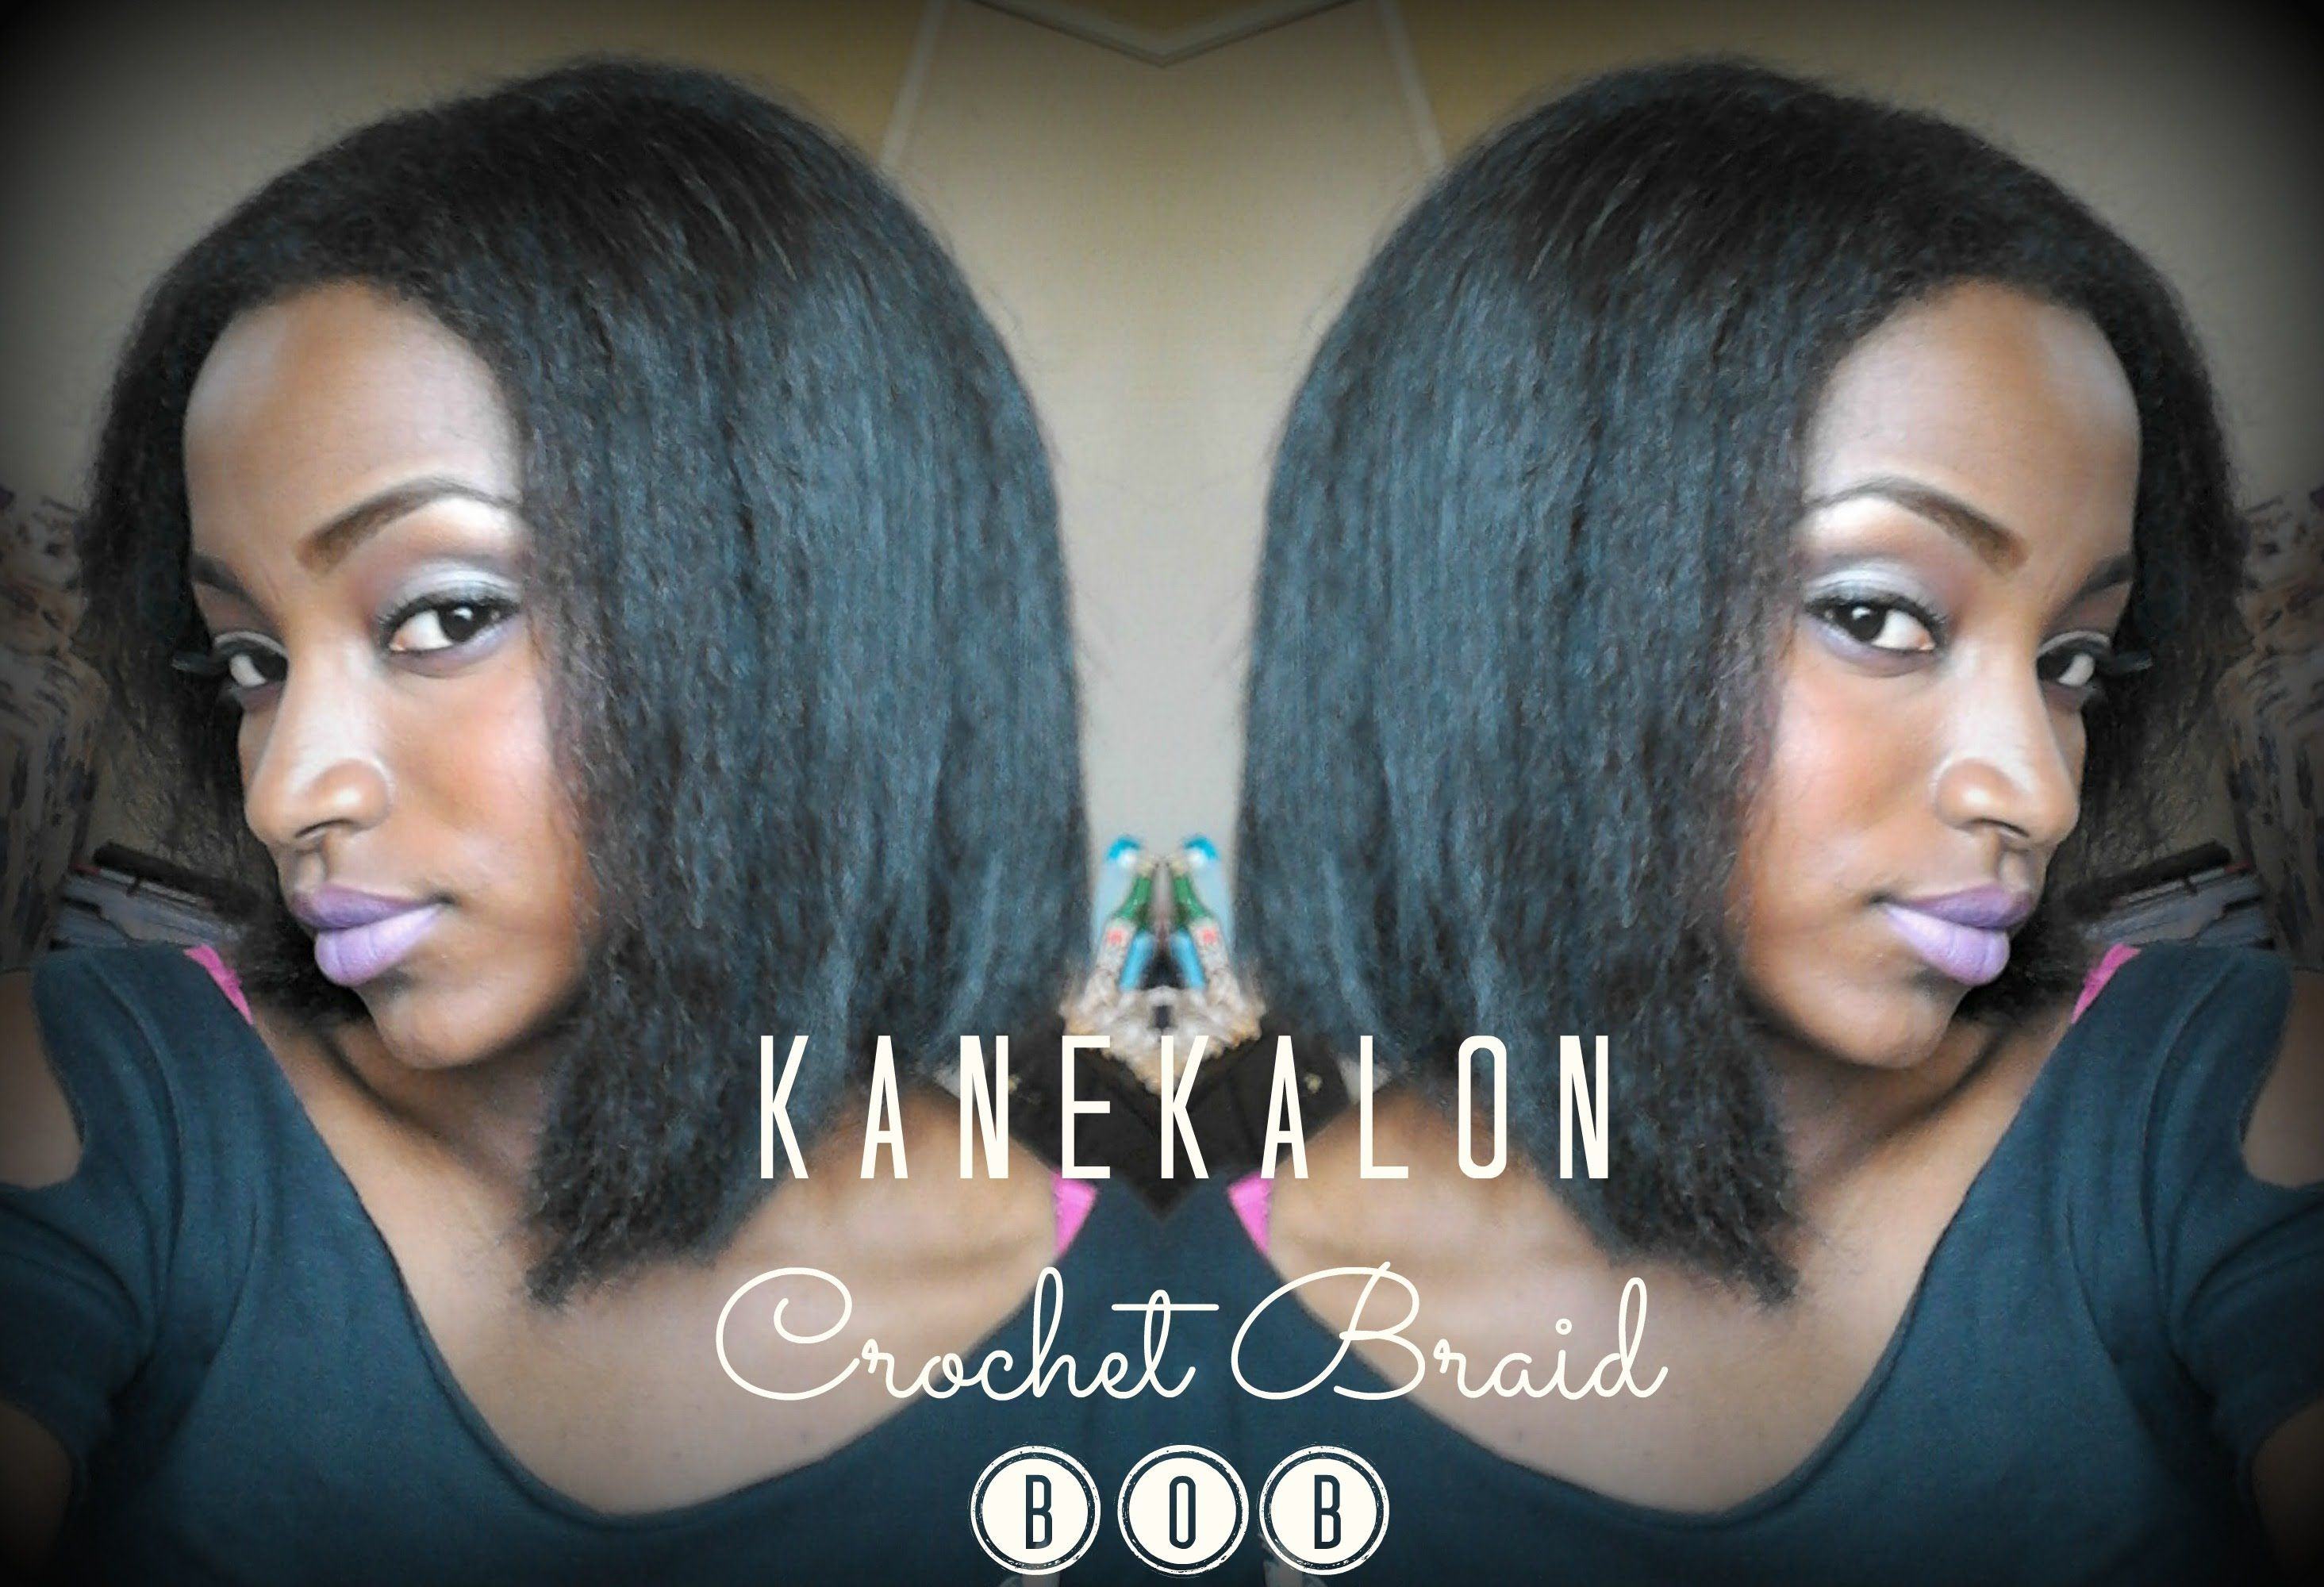 Kanekalon Crochet Braid Bob Cutting Styling Tips Crochet